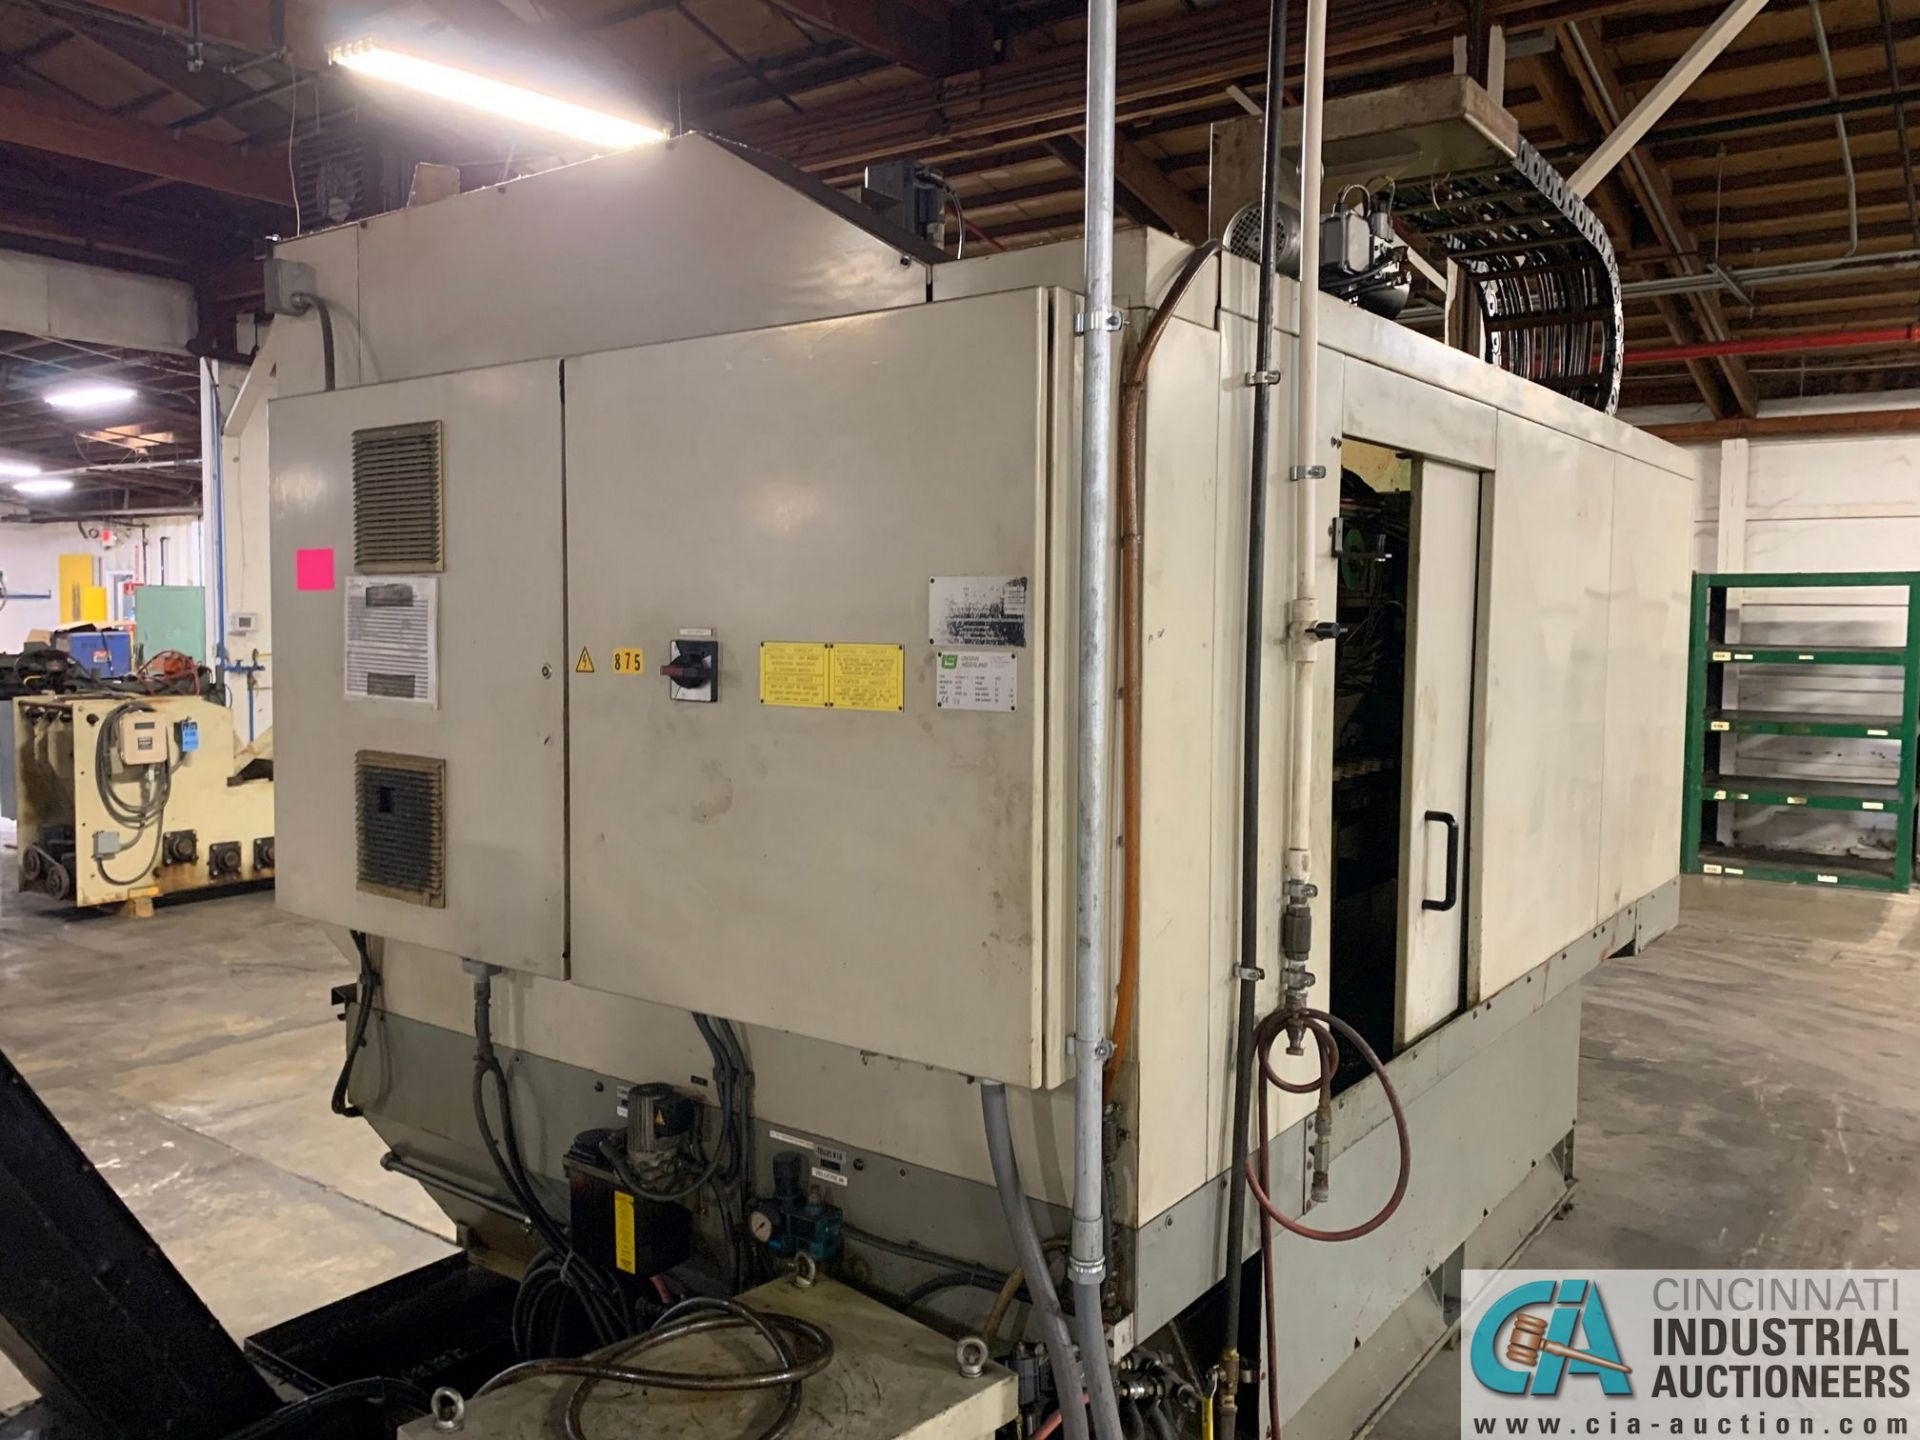 MONARCH UNISIGN TYPE UNIVERS 4 ZONALL 4 CNC VERTICAL MACHINING CENTER; S/N 99Z403, NO. 4293, - Image 7 of 13